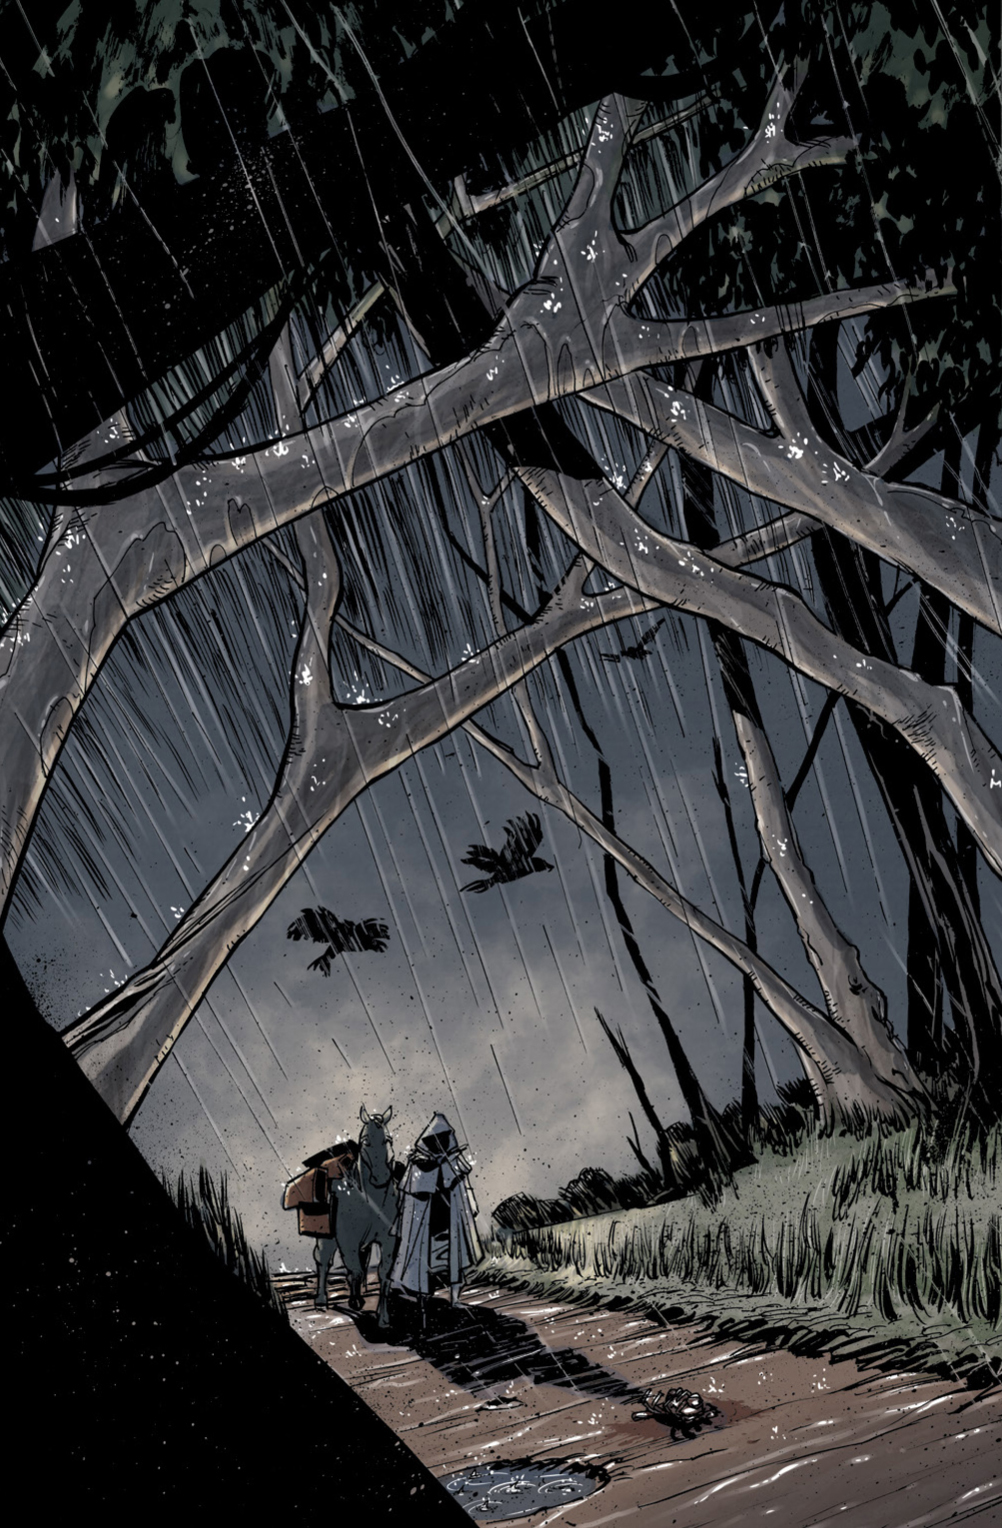 THE LAST SIEGE #1 PG 01-26 PREVIEW-4A.jpg